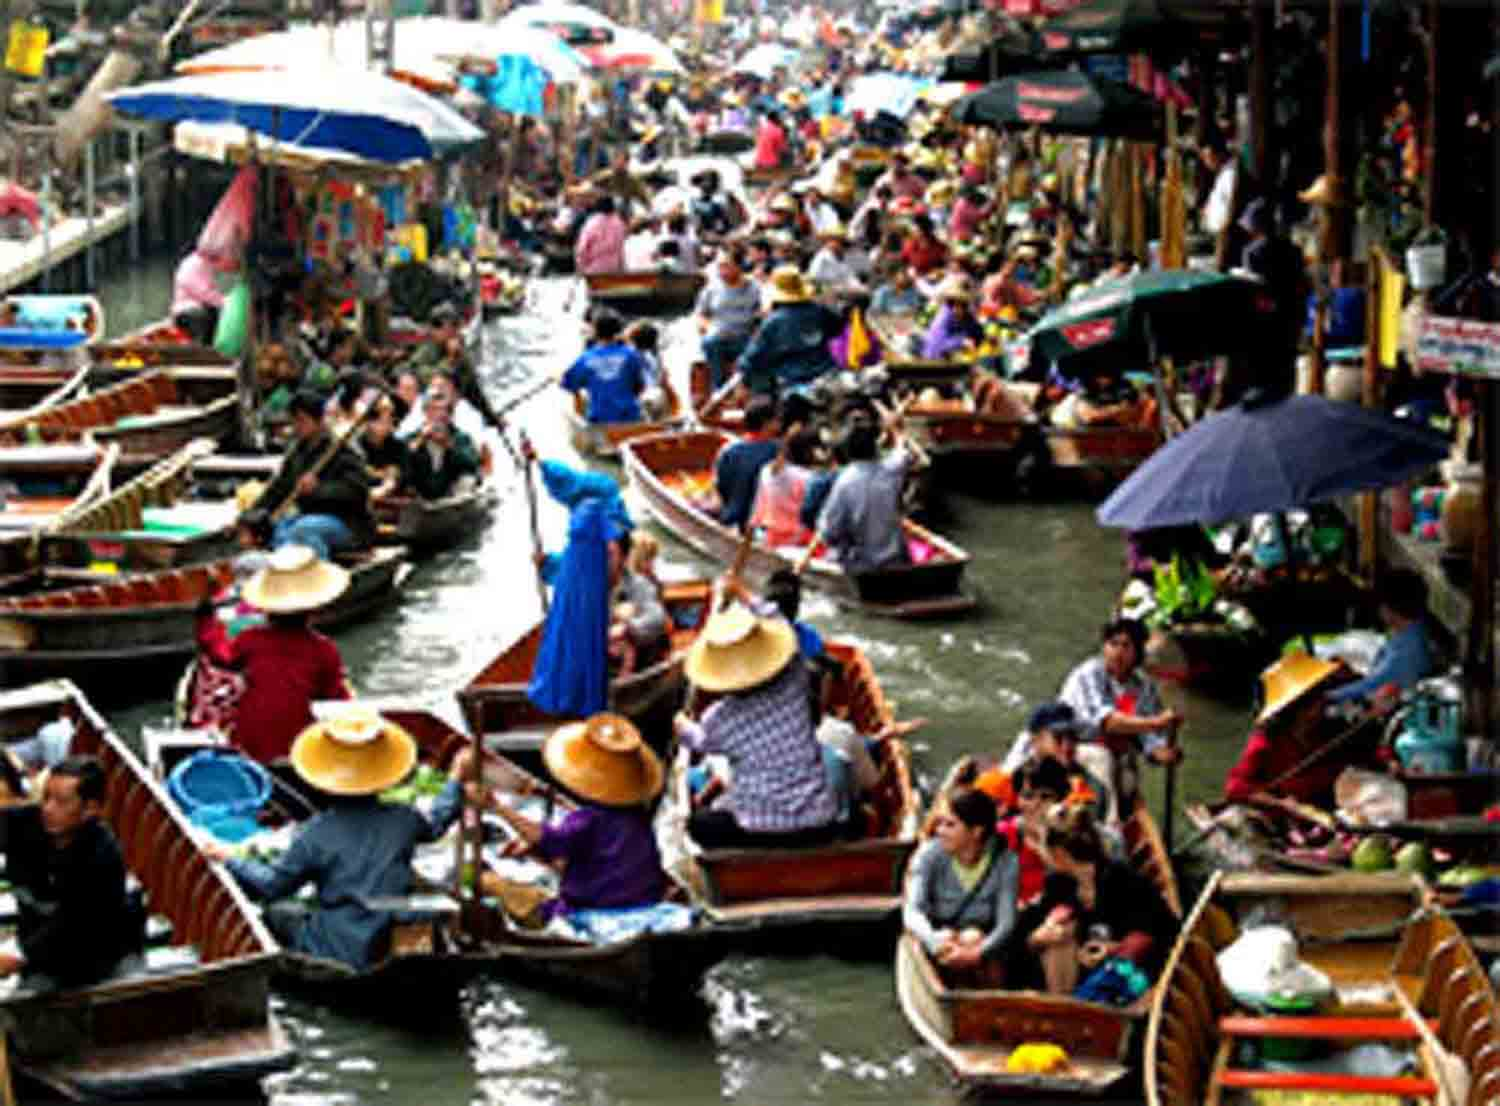 floating market in thailand There are many floating markets throughout thailand, many within a couple of hours drive of bangkok there are colorfully clad merchants at these lively markets.